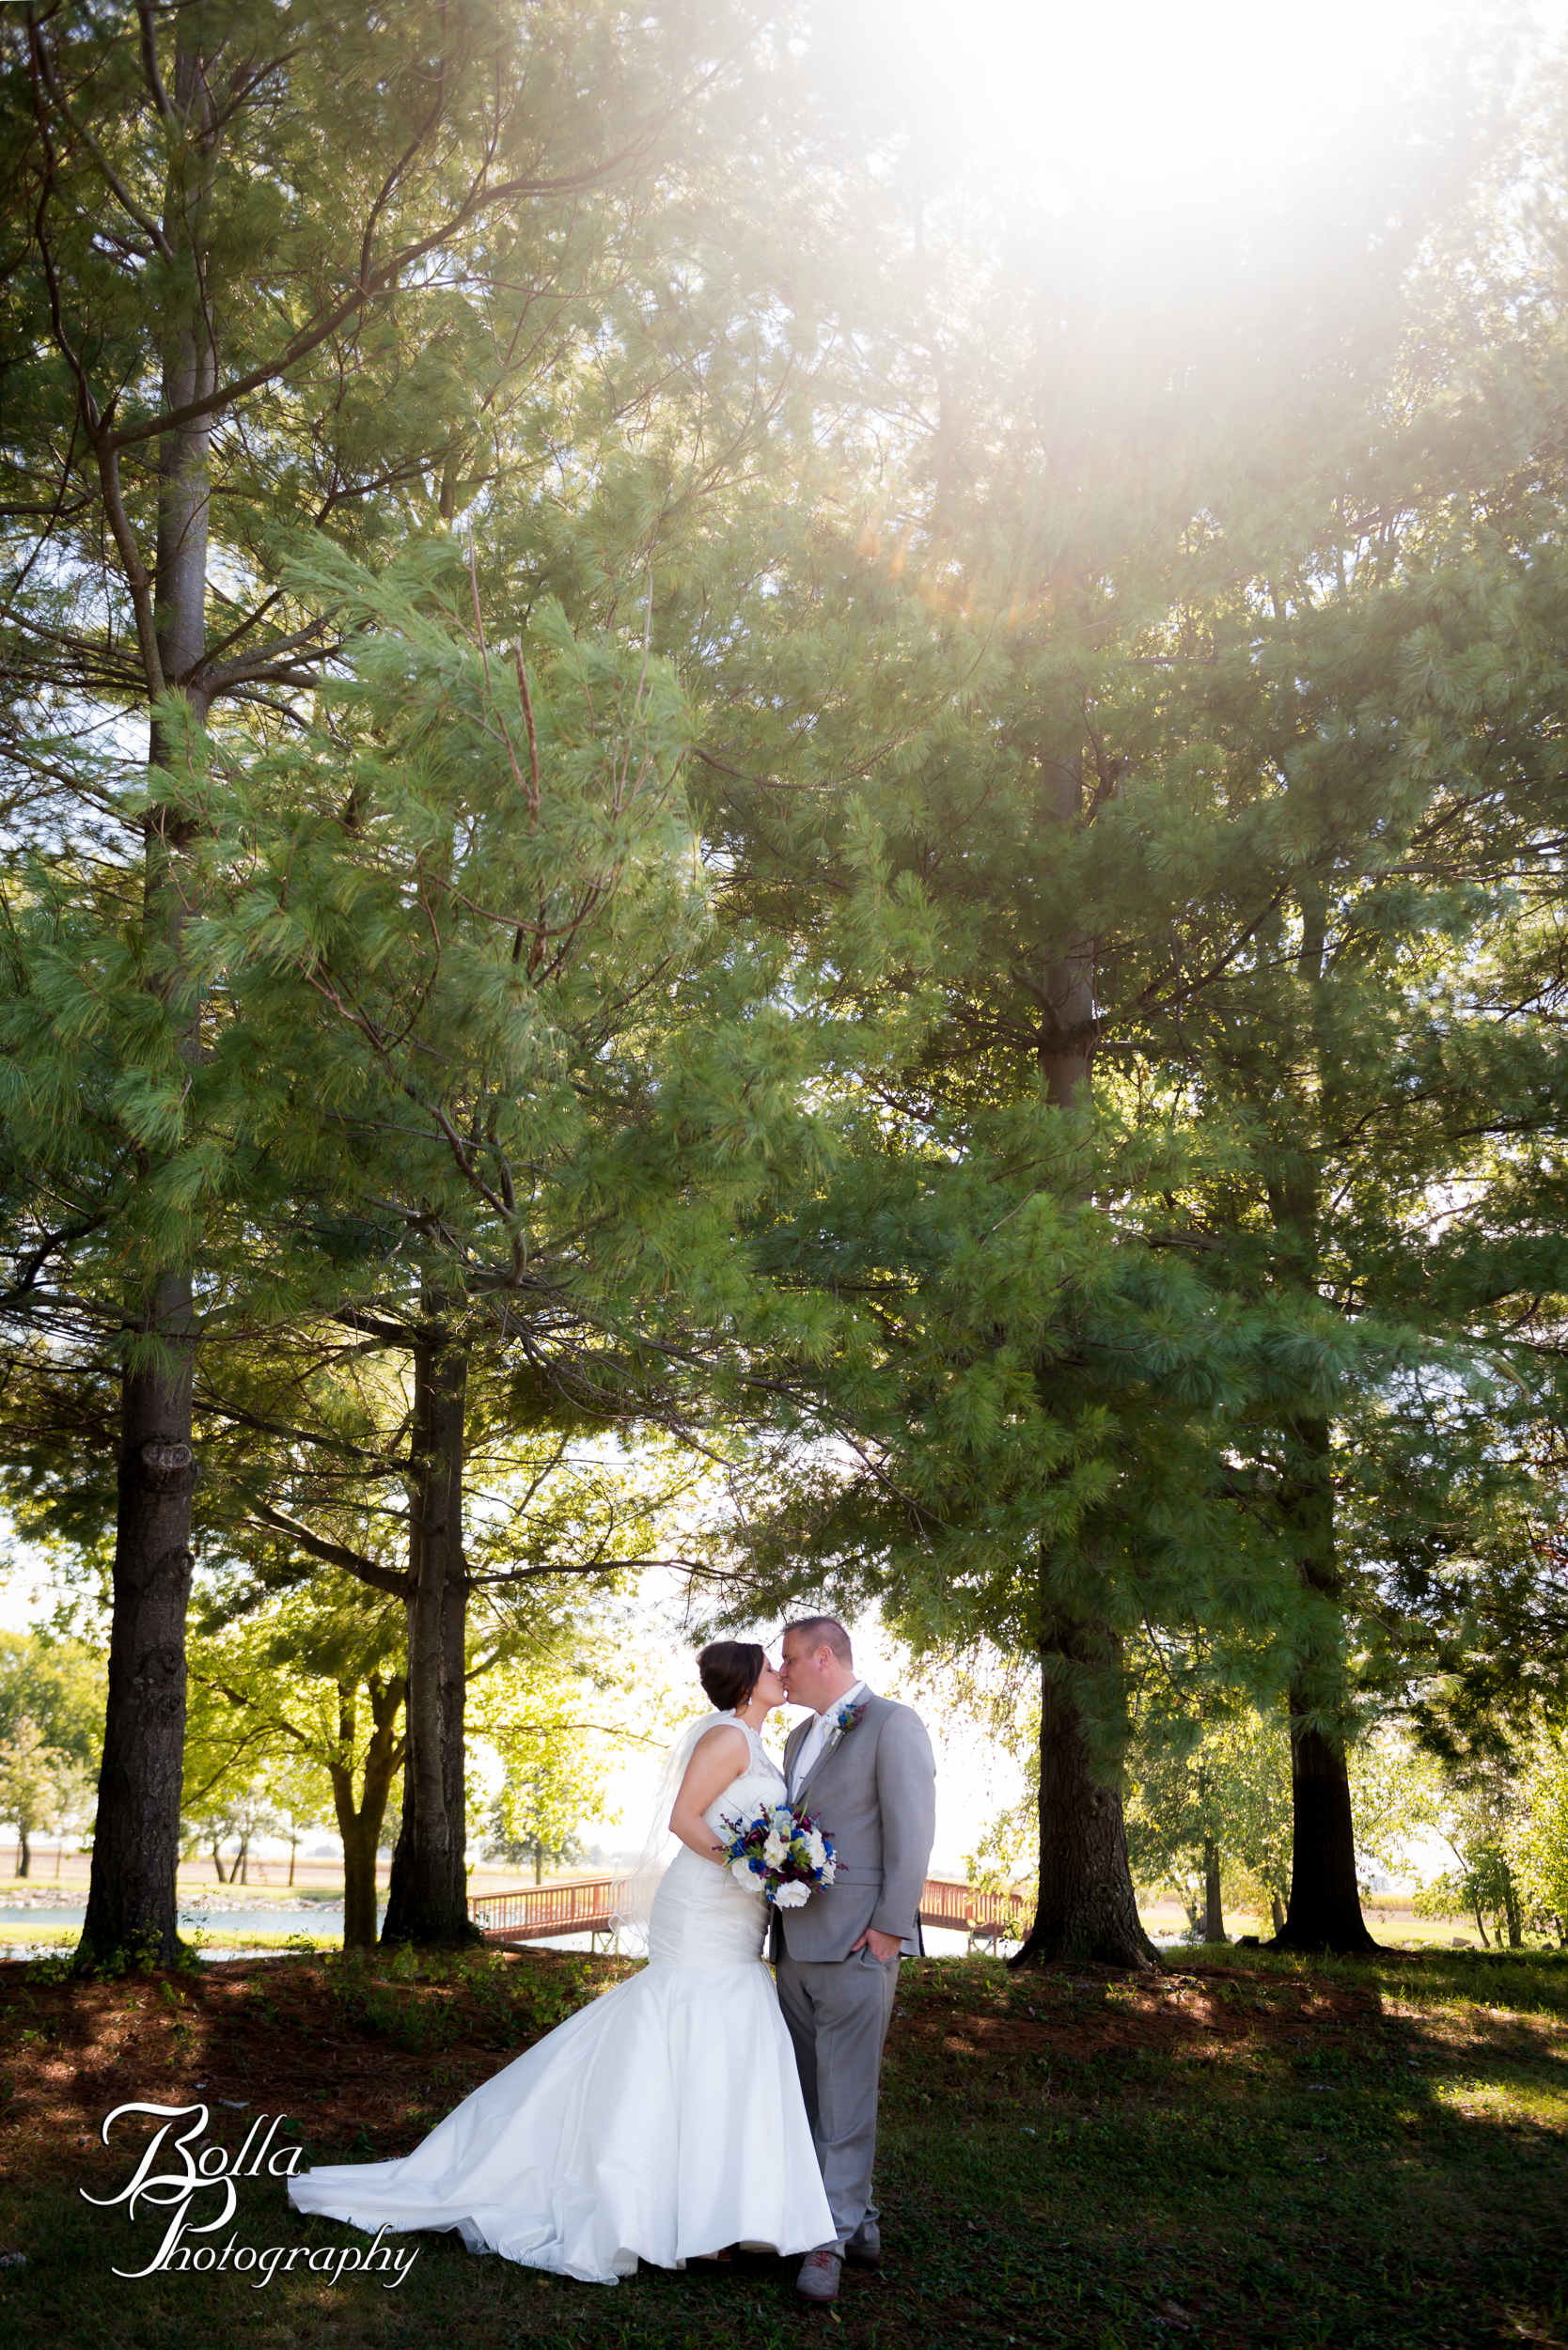 Bolla_photography_edwardsville_wedding_photographer_st_louis_weddings_Heinzmann-0003.jpg